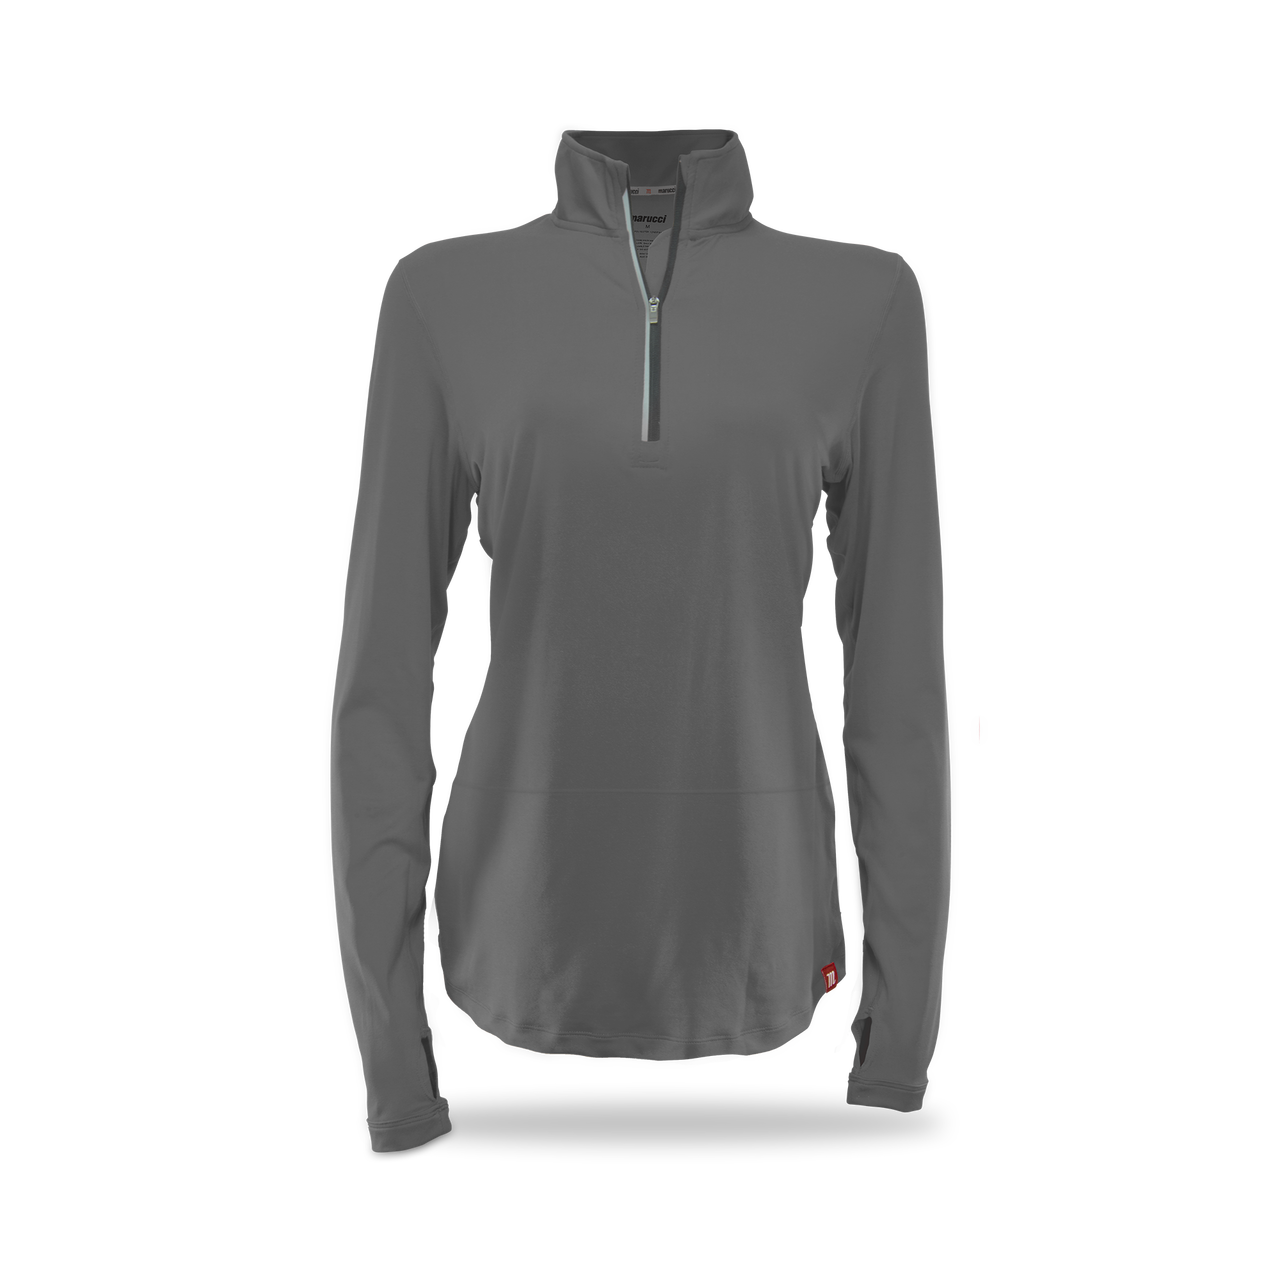 af2f294ac7d9 Women s Long Sleeve 1 4 Zip Performance Top - Marucci Sports